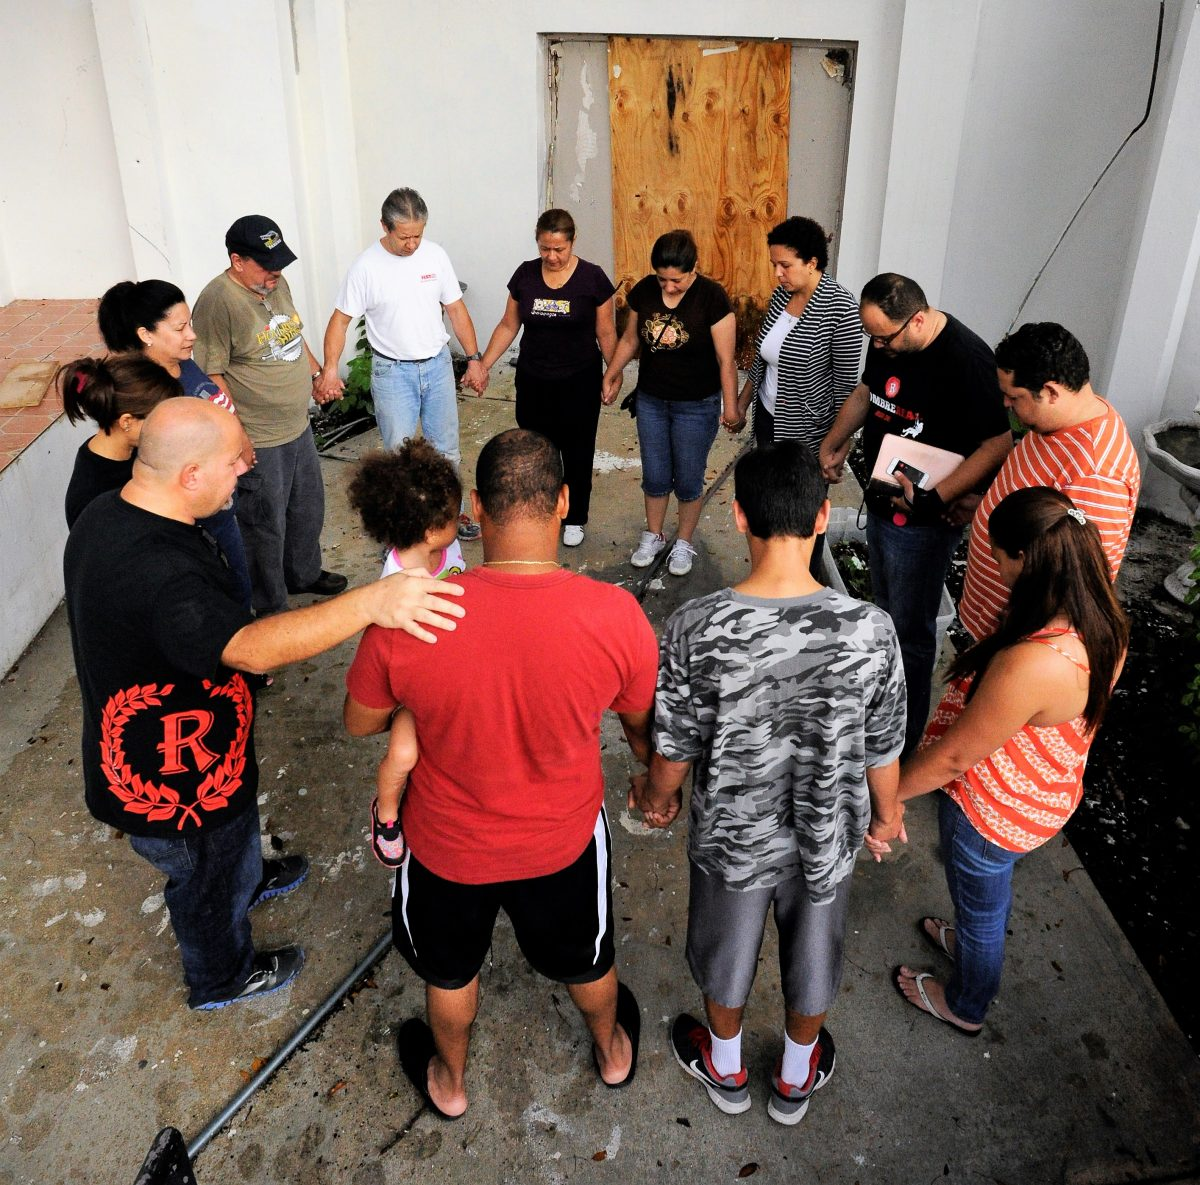 Members of Igreja Real in Hollywood pray as they renovate their new property.